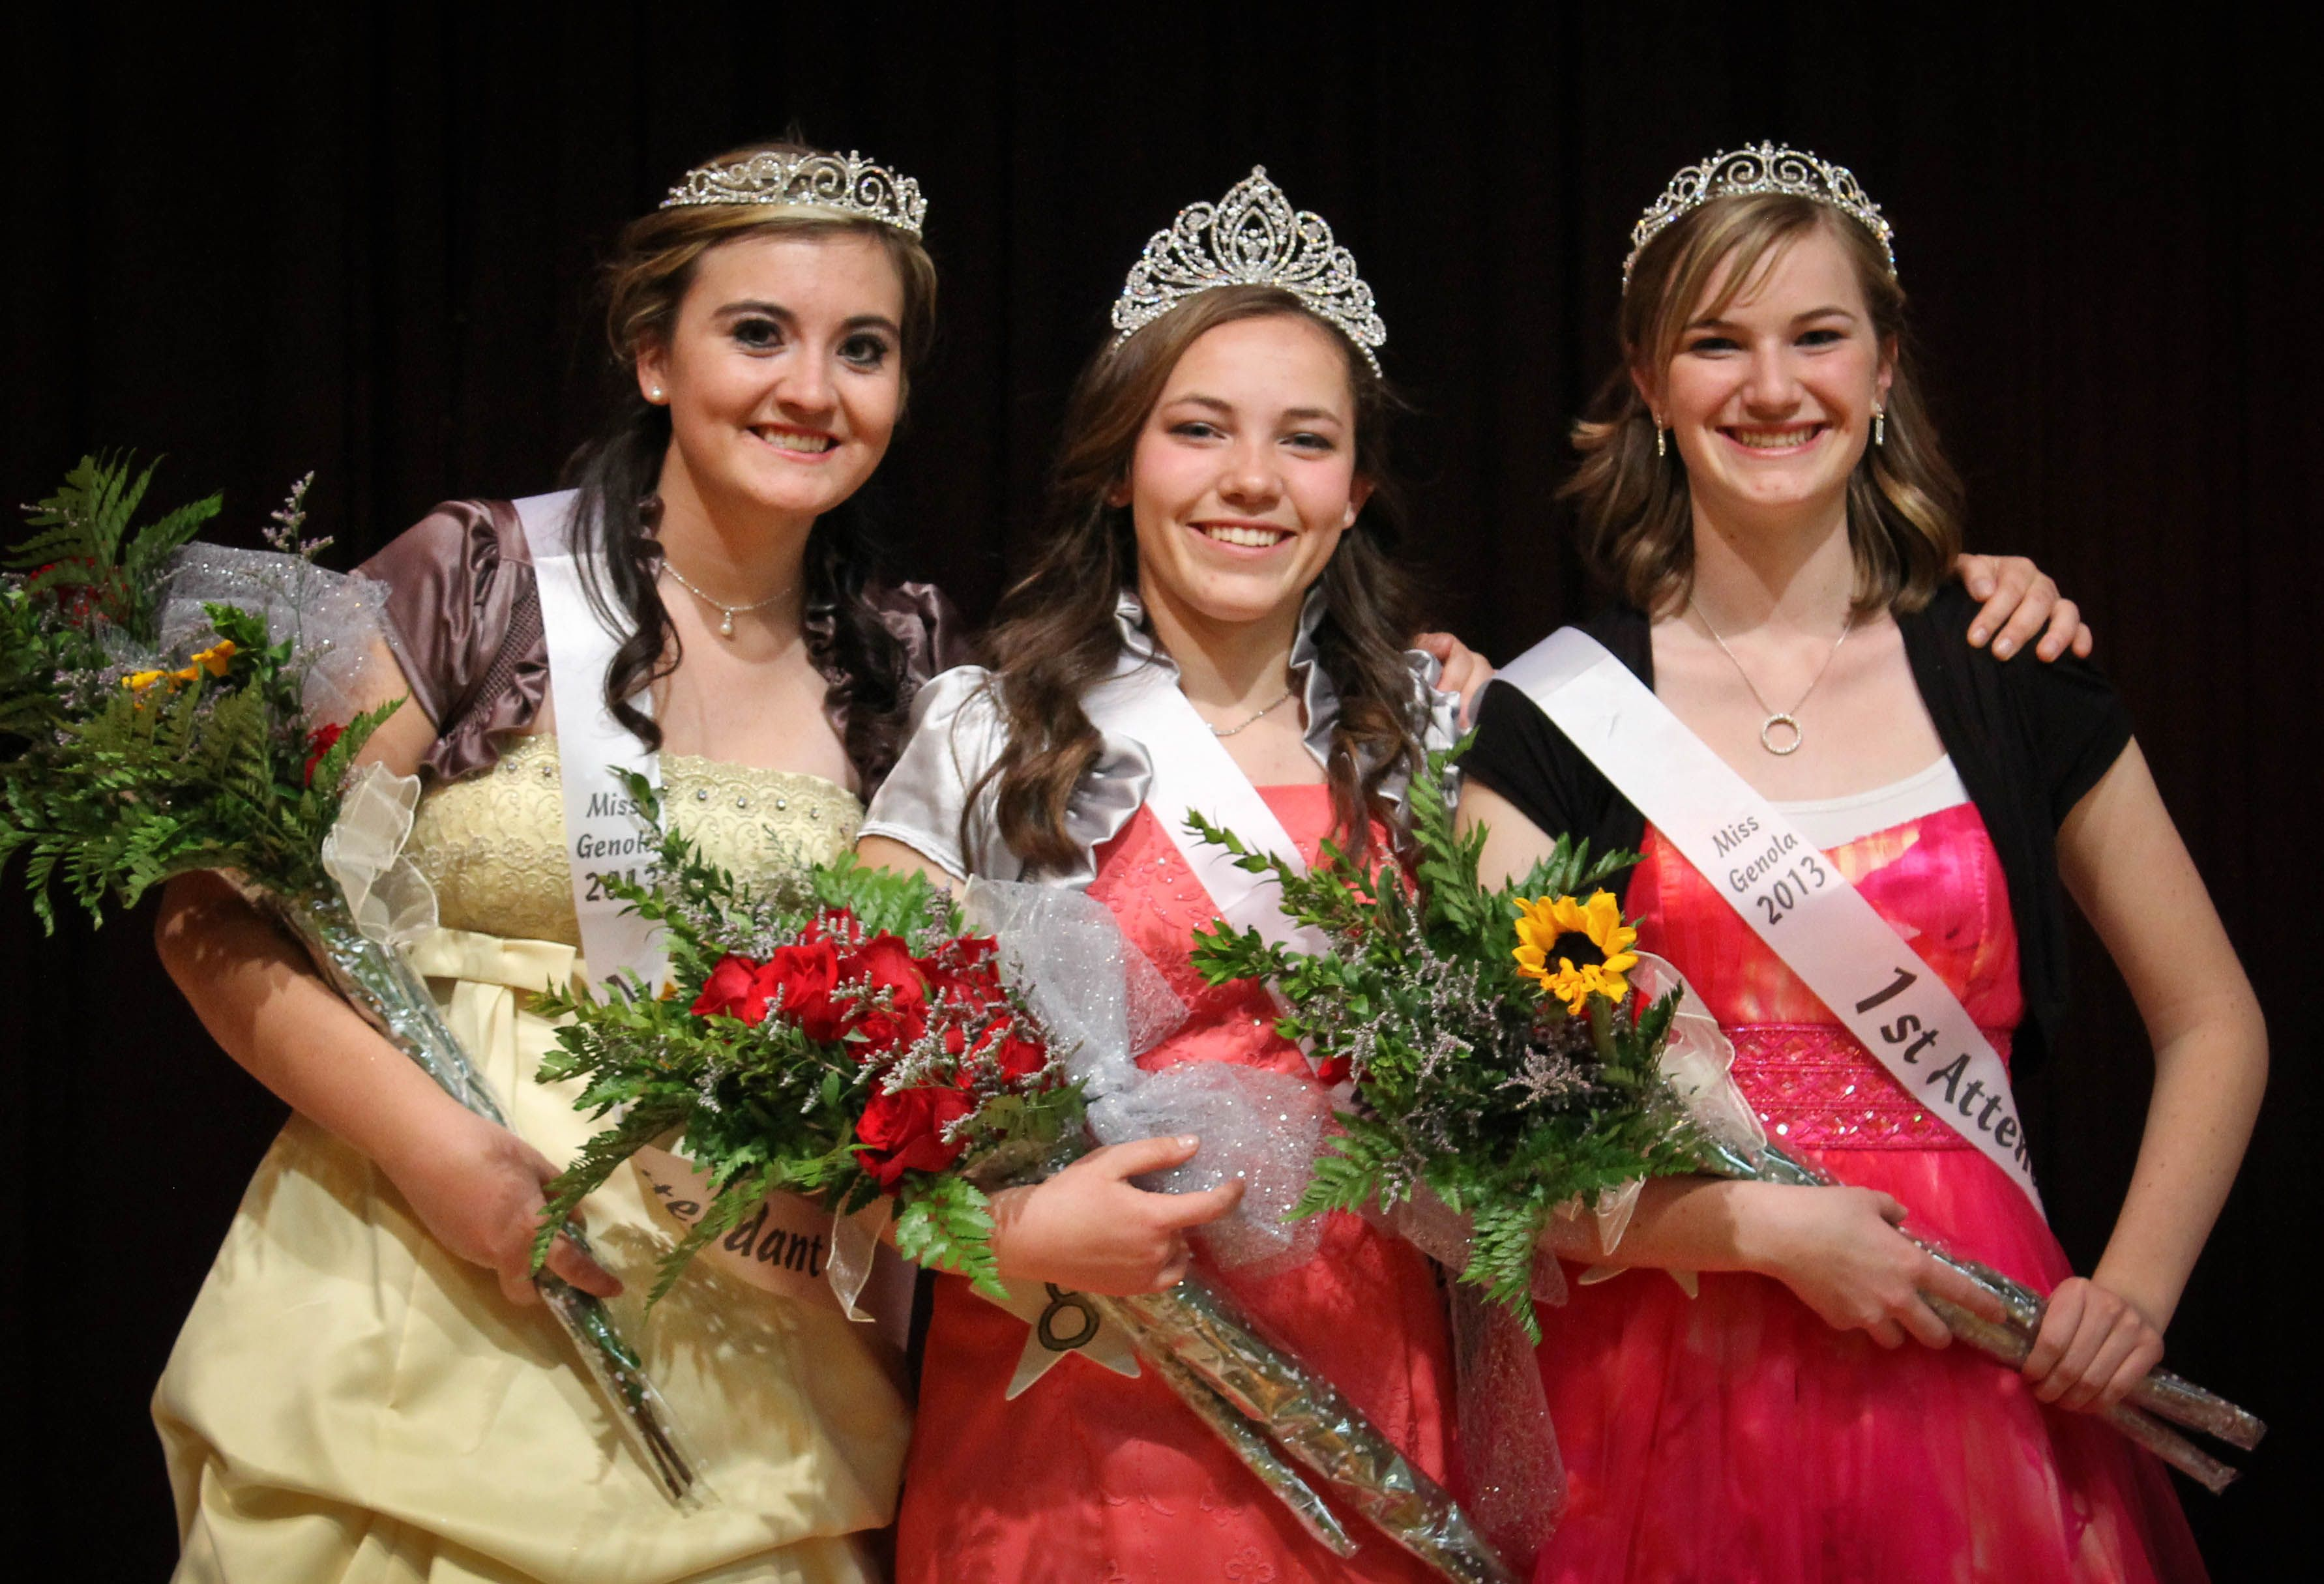 Genola crowns new royalty: http://paysonchronicle.blogspot.com/2013/04/kaitlyn-ward-crowned-miss-genola.html